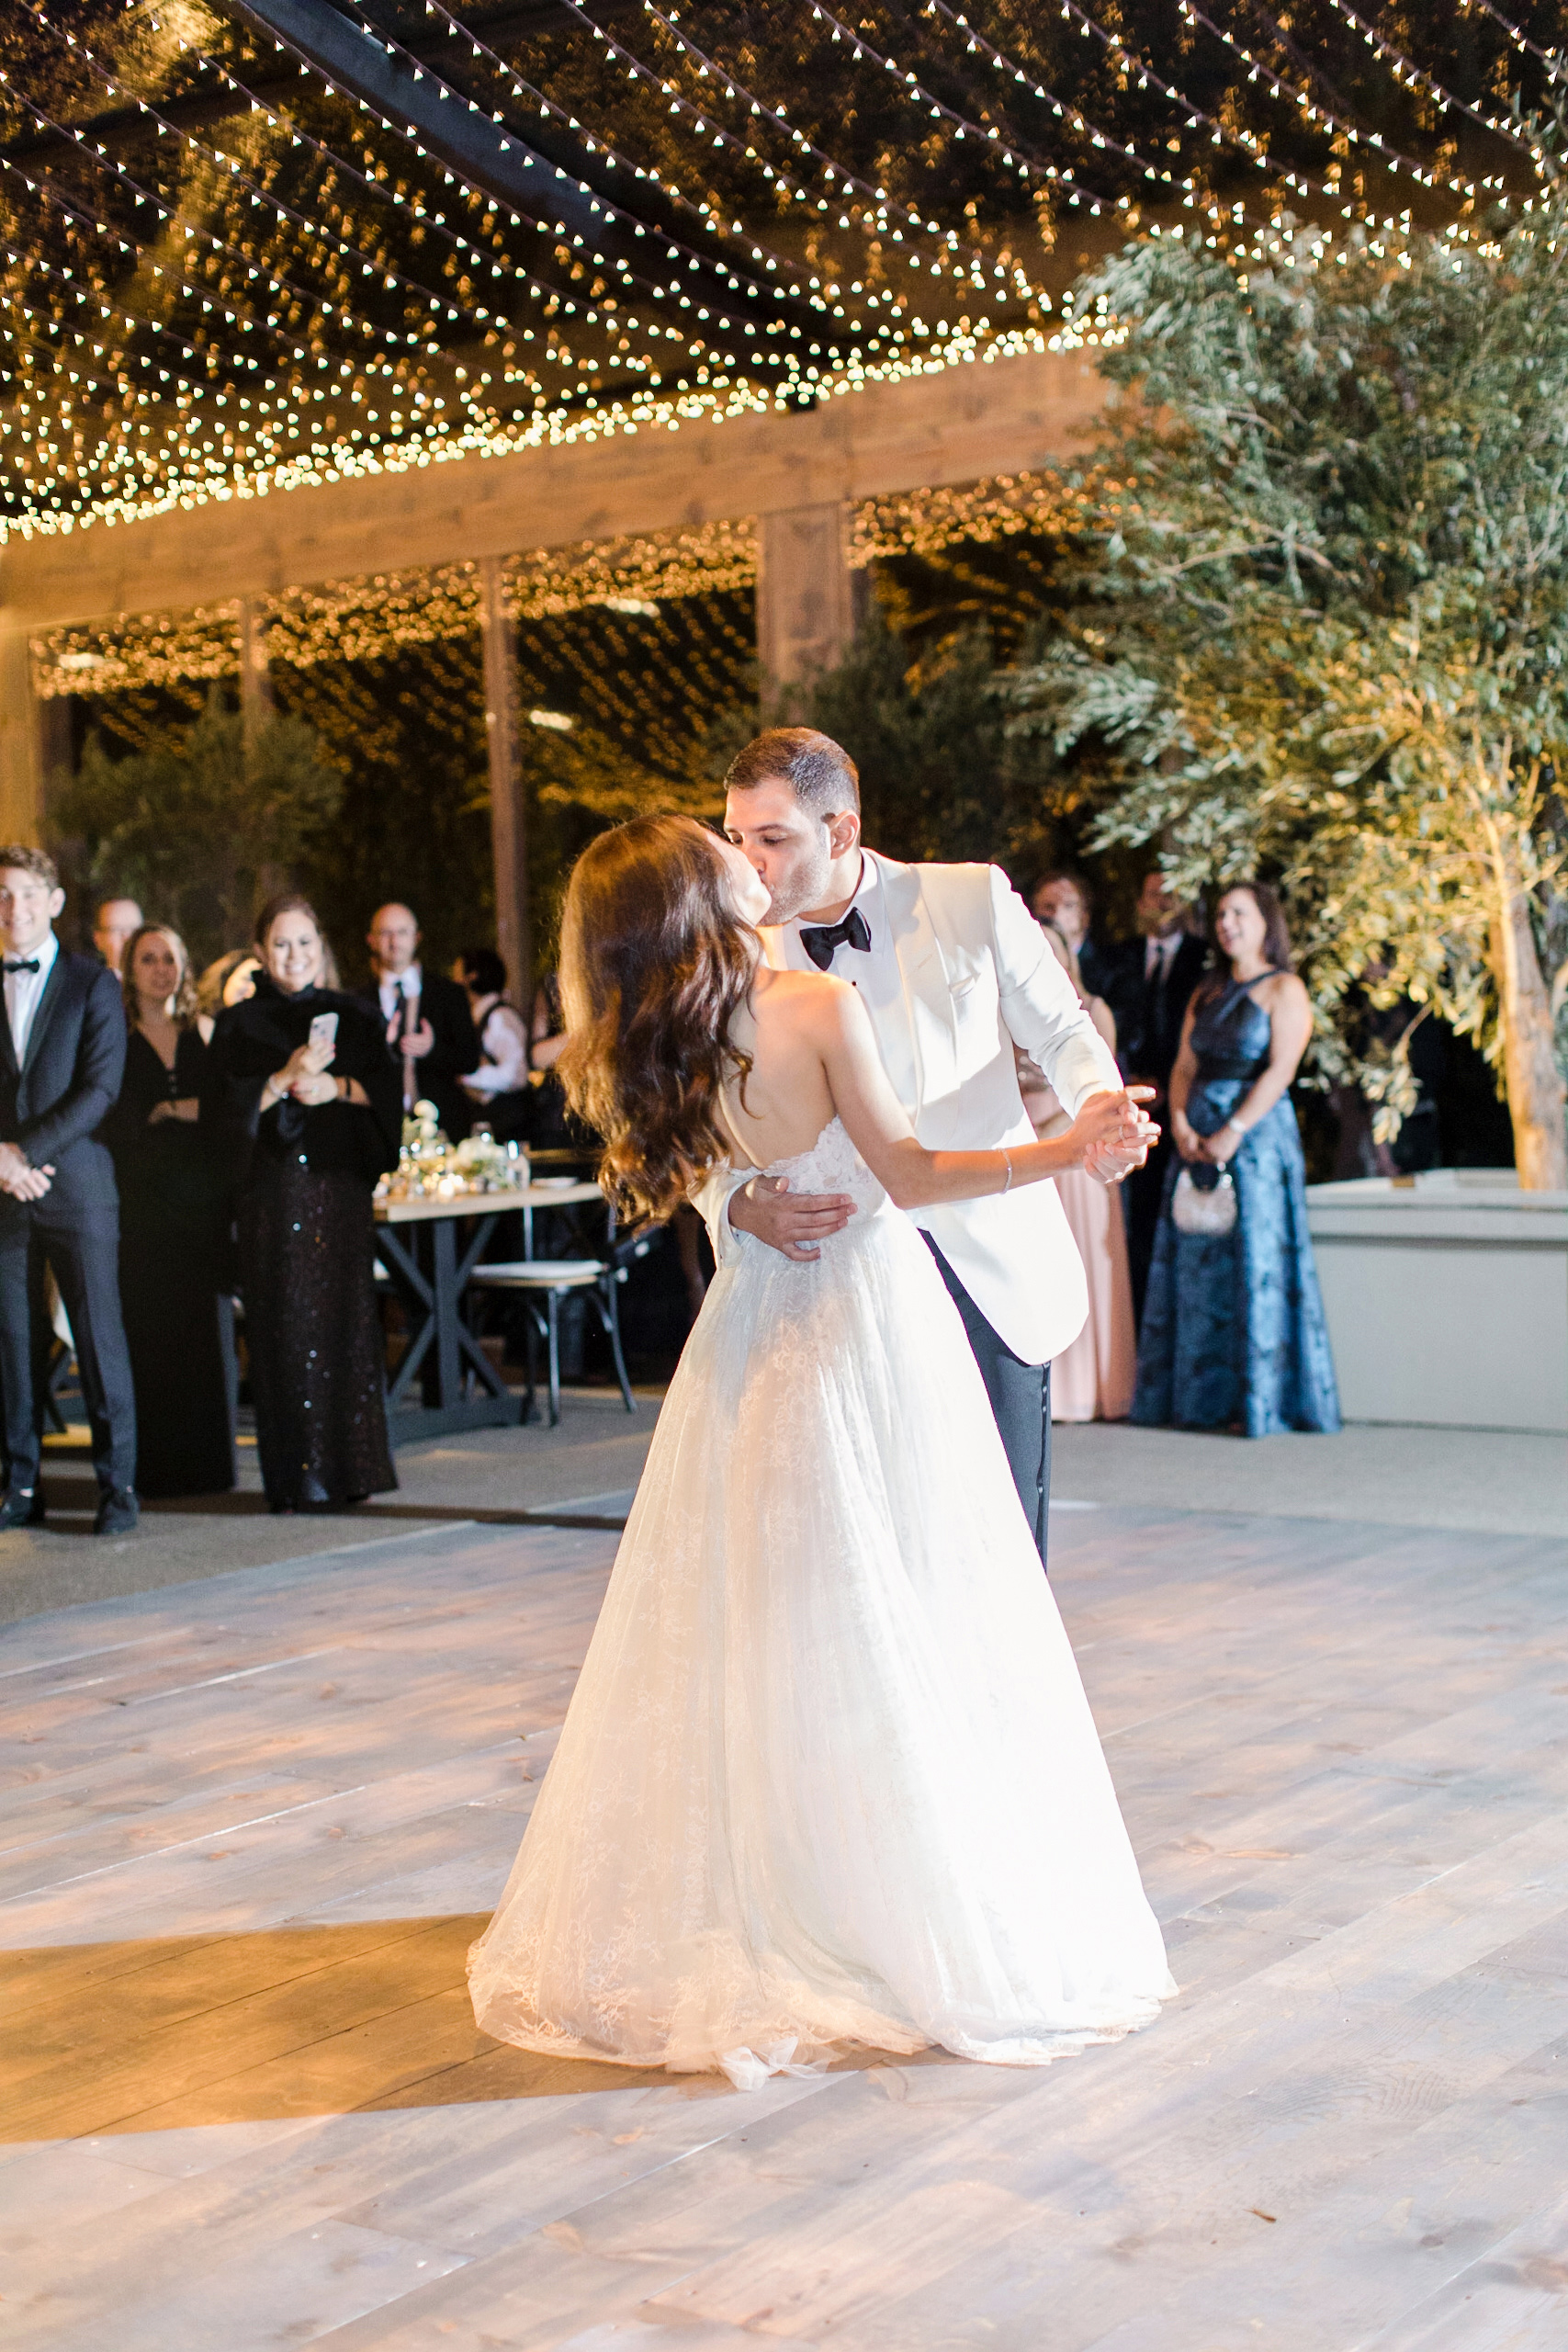 bride groom wedding reception first dance under string lights